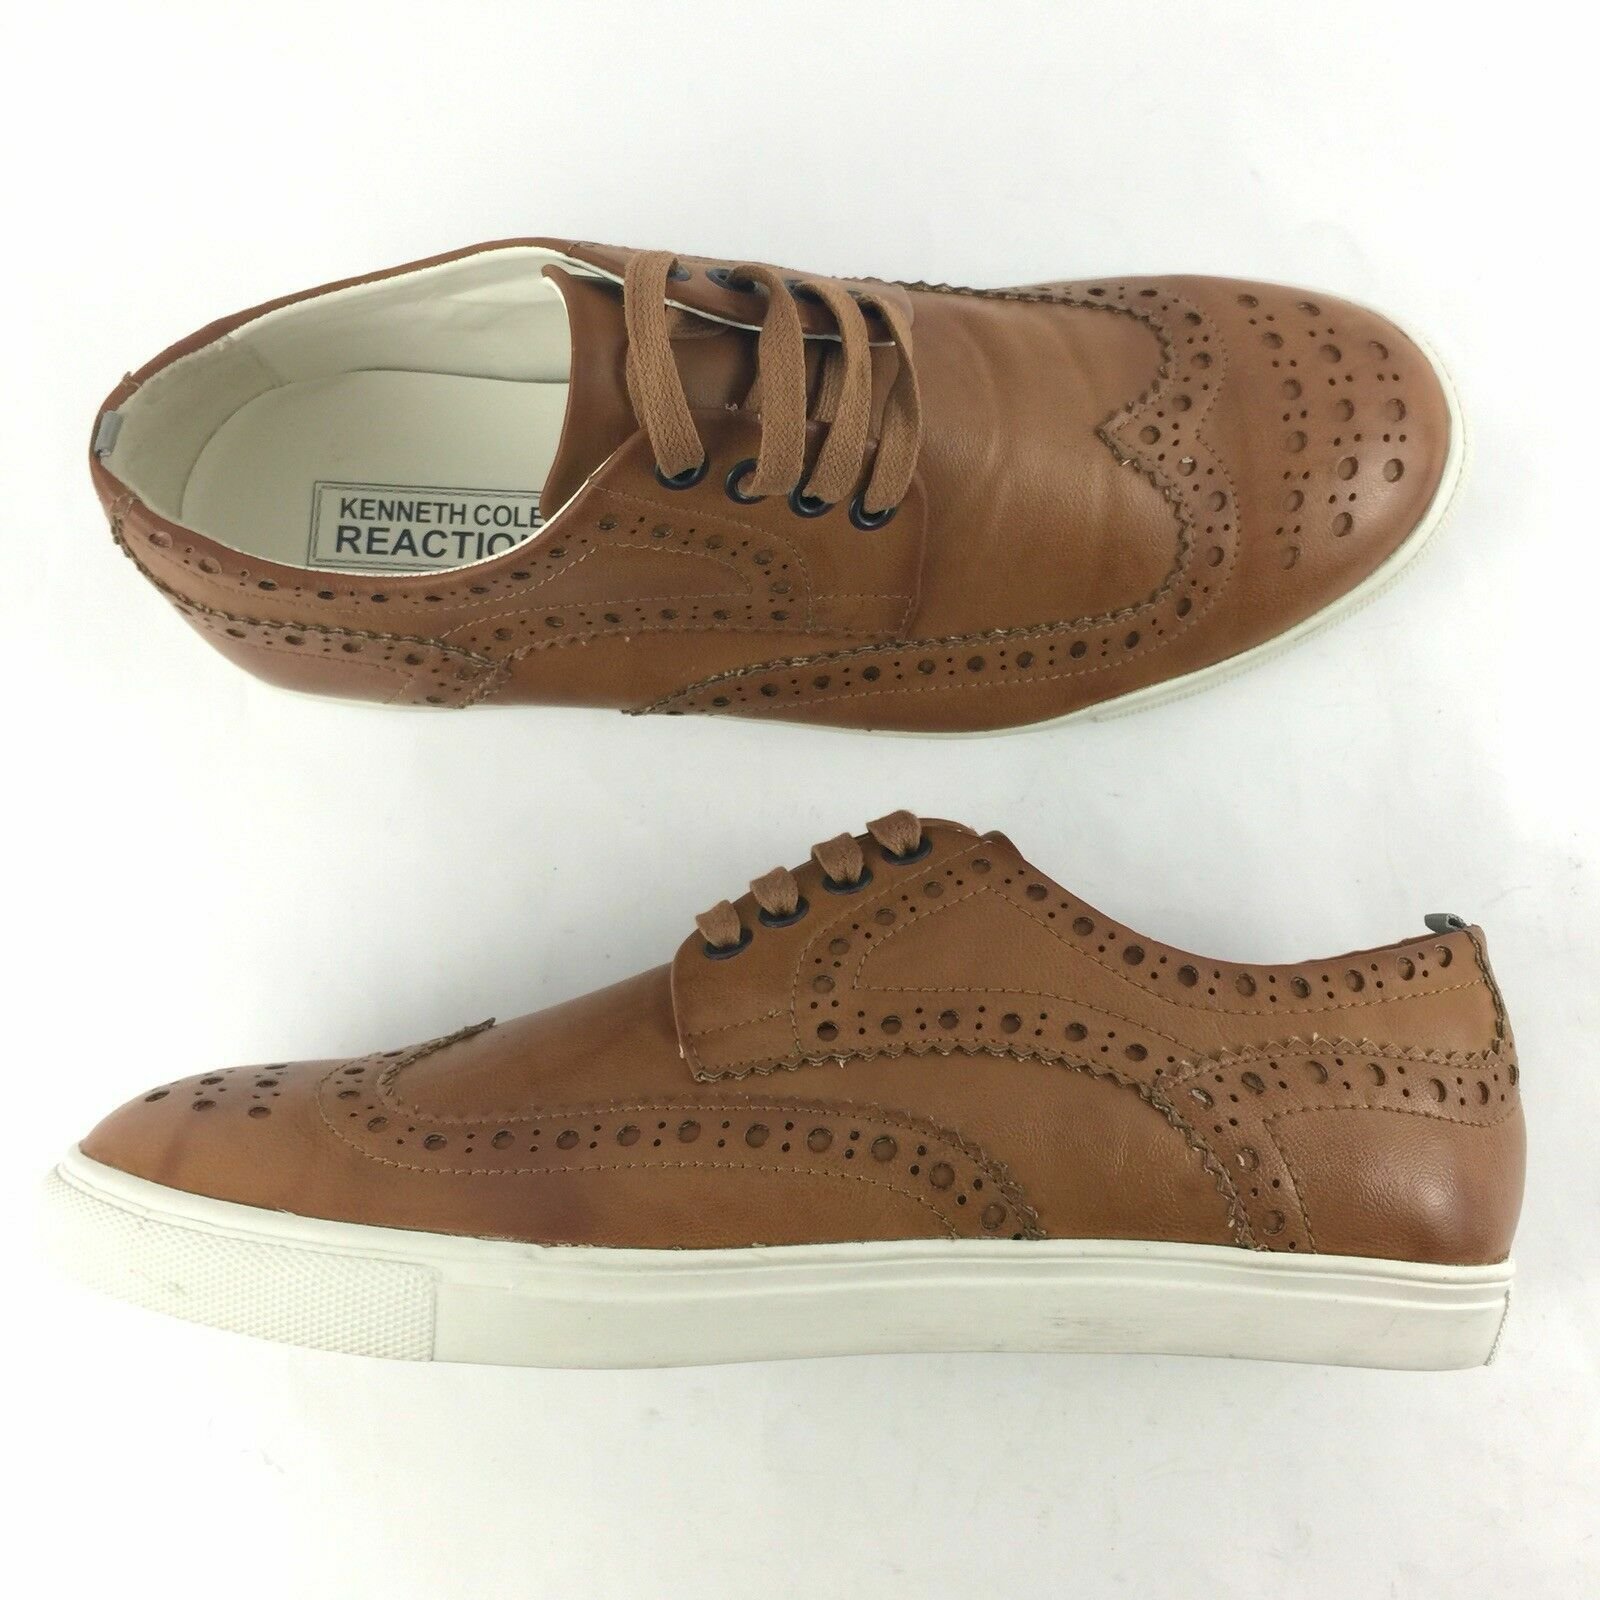 Kenneth Cole Reaction Stand Up Guy Size 10 M US Oxford Shoes Wingtip Tan Men New